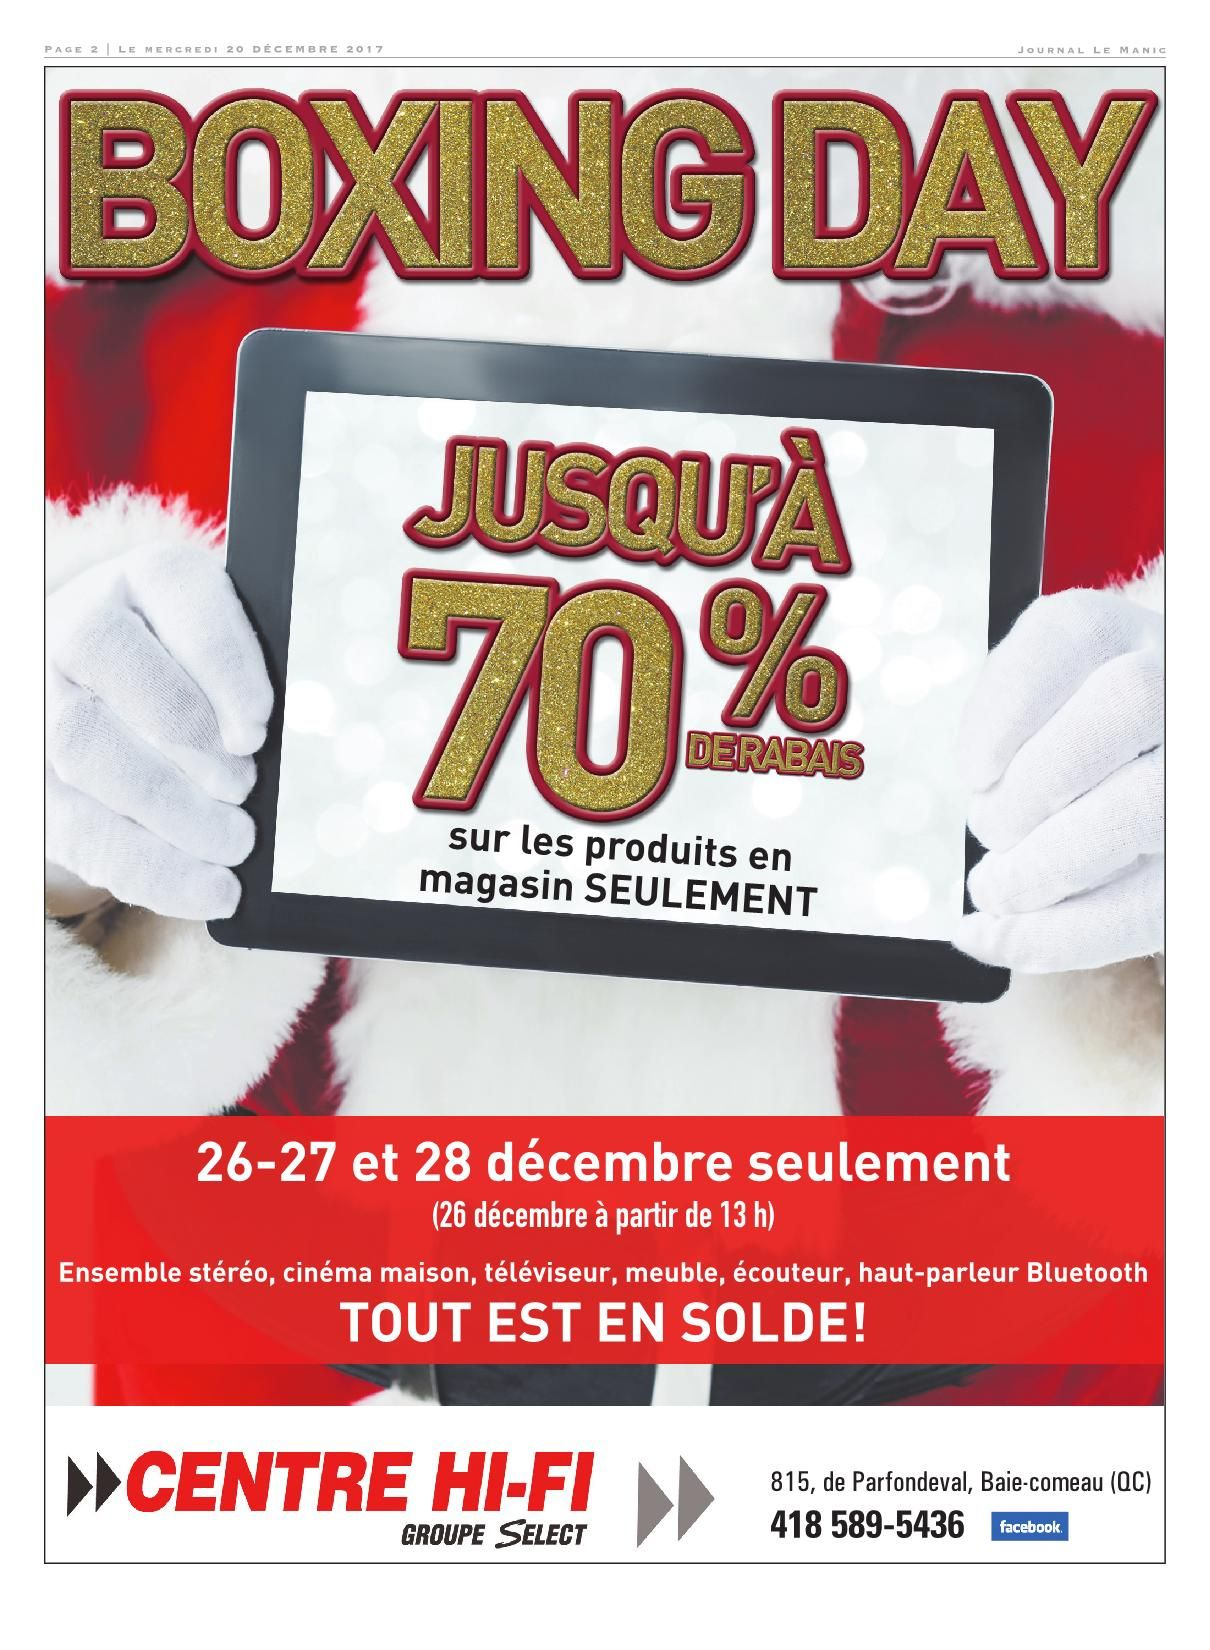 Meubles Accent Dolbeau-mistassini Le Manic 20 Décembre 2017 Pages 1 44 Text Version Fliphtml5